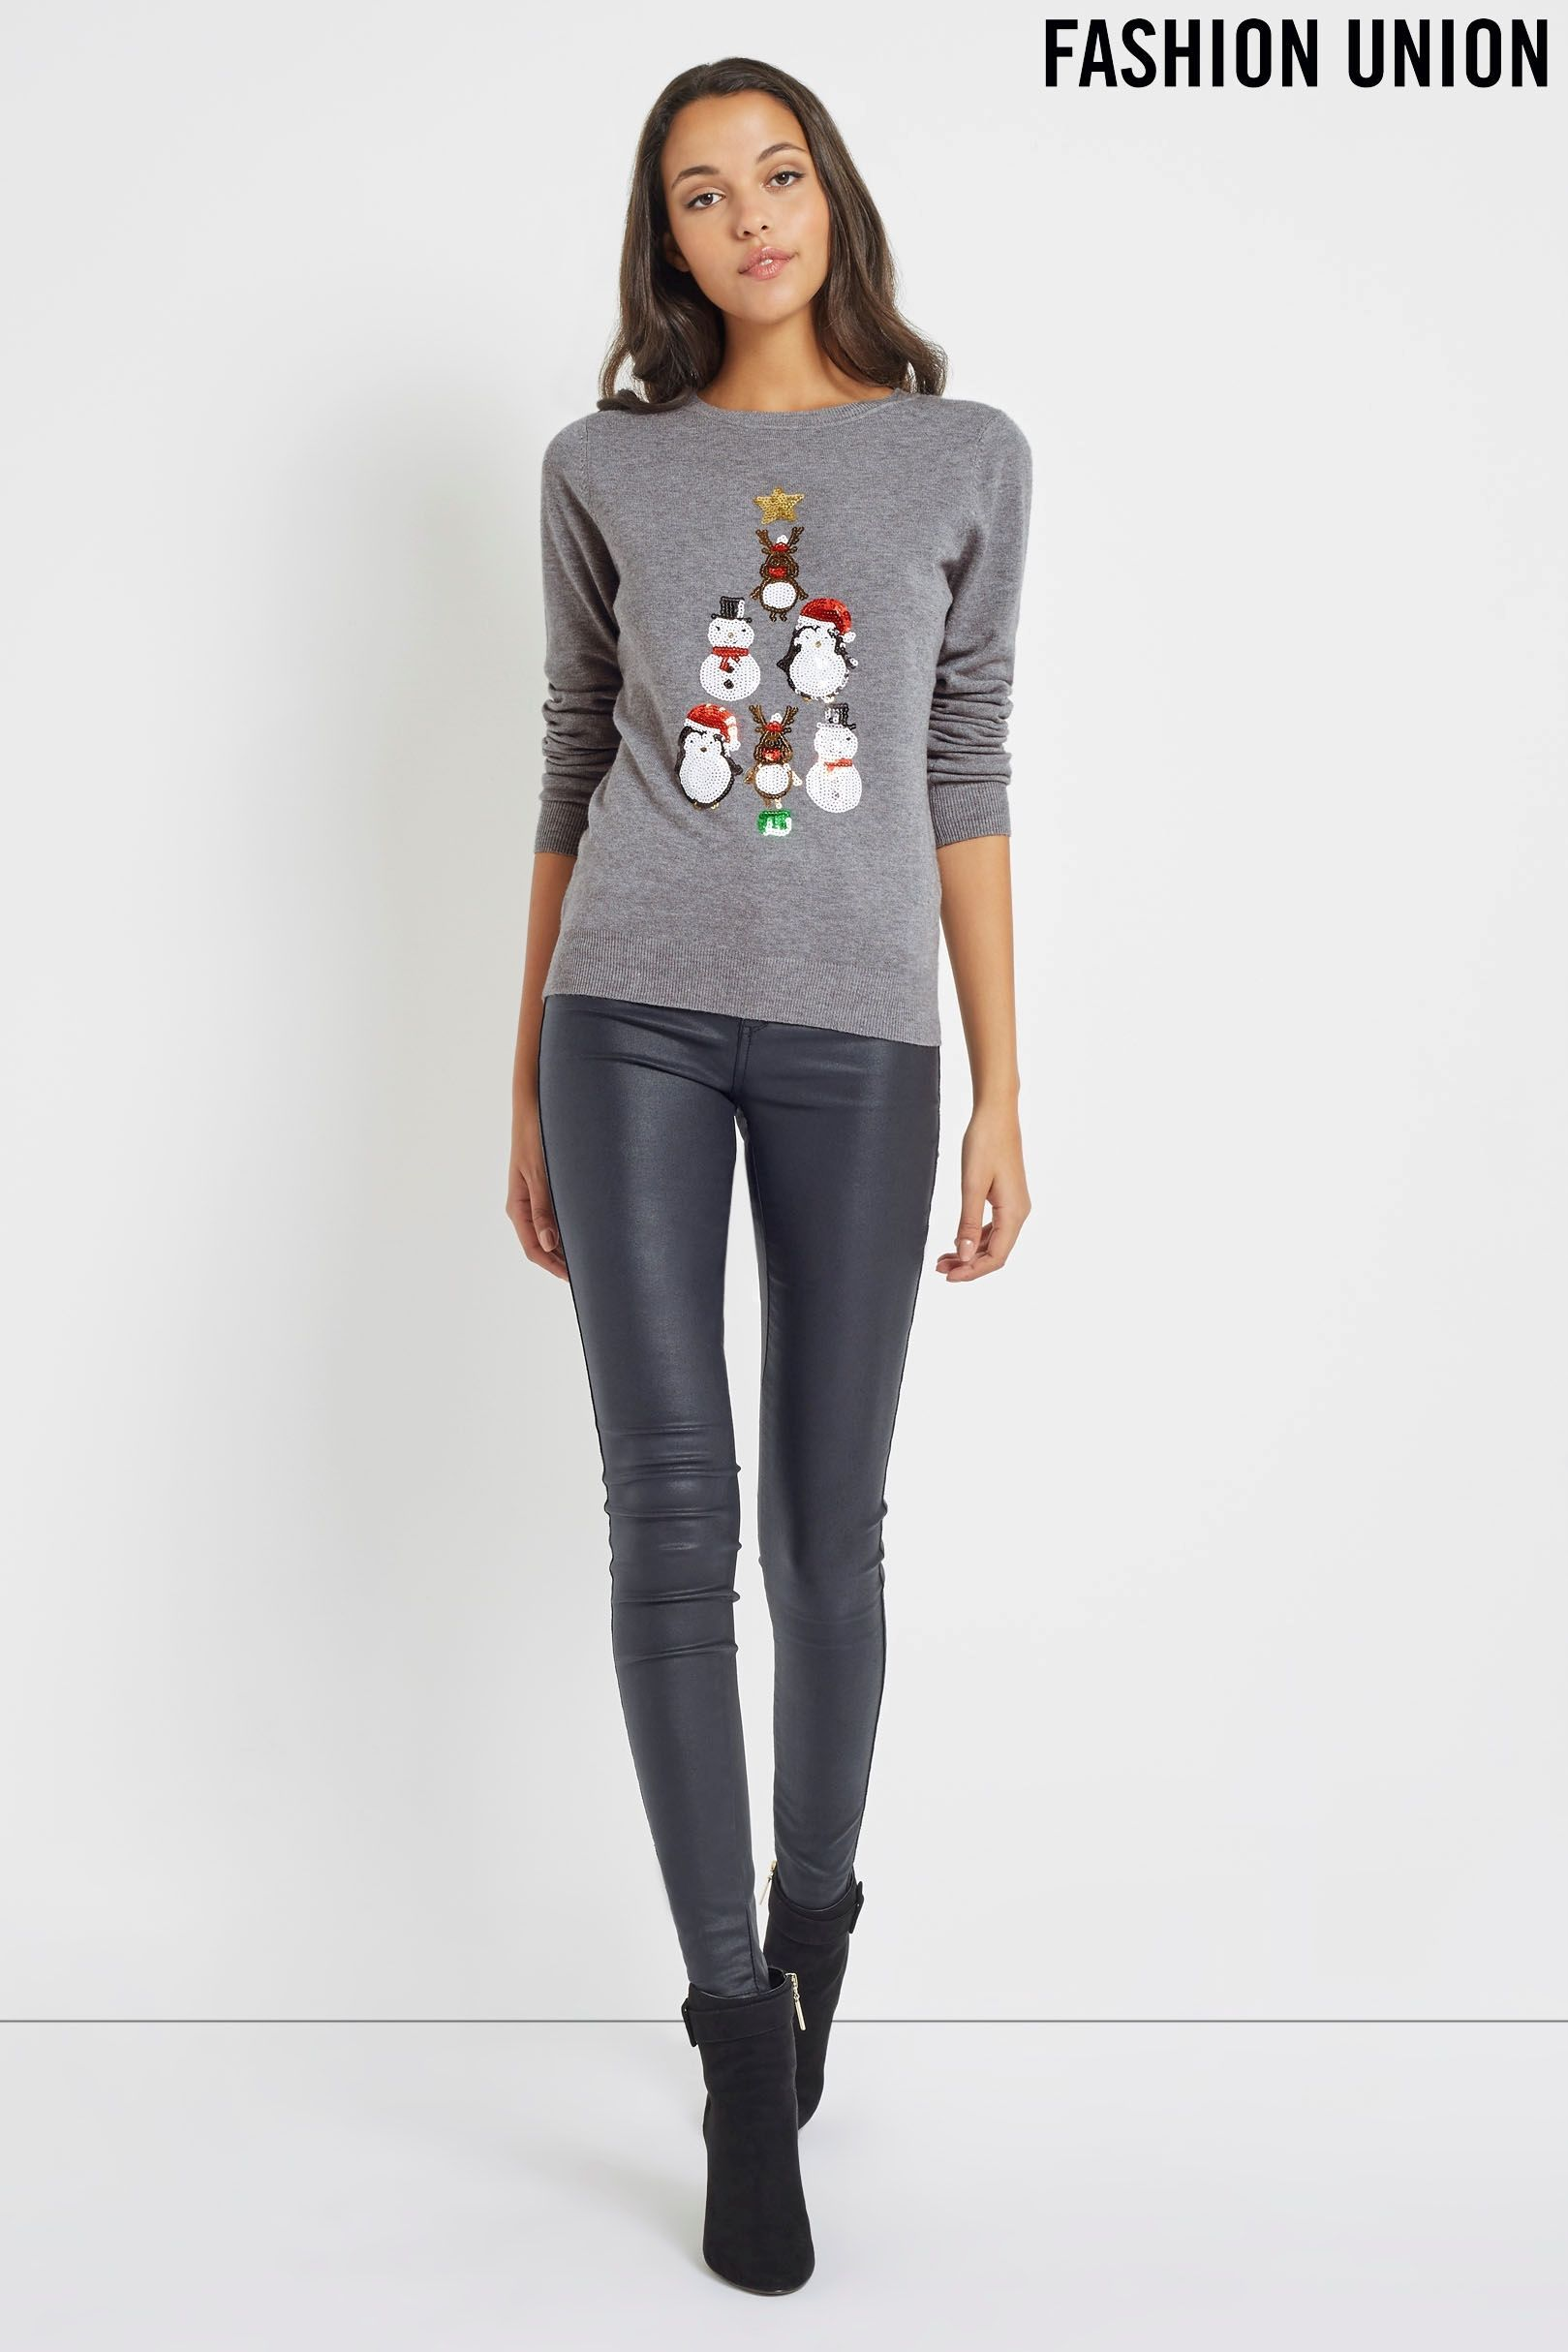 Buy Fashion Union Novelty Christmas Jumper from the Next